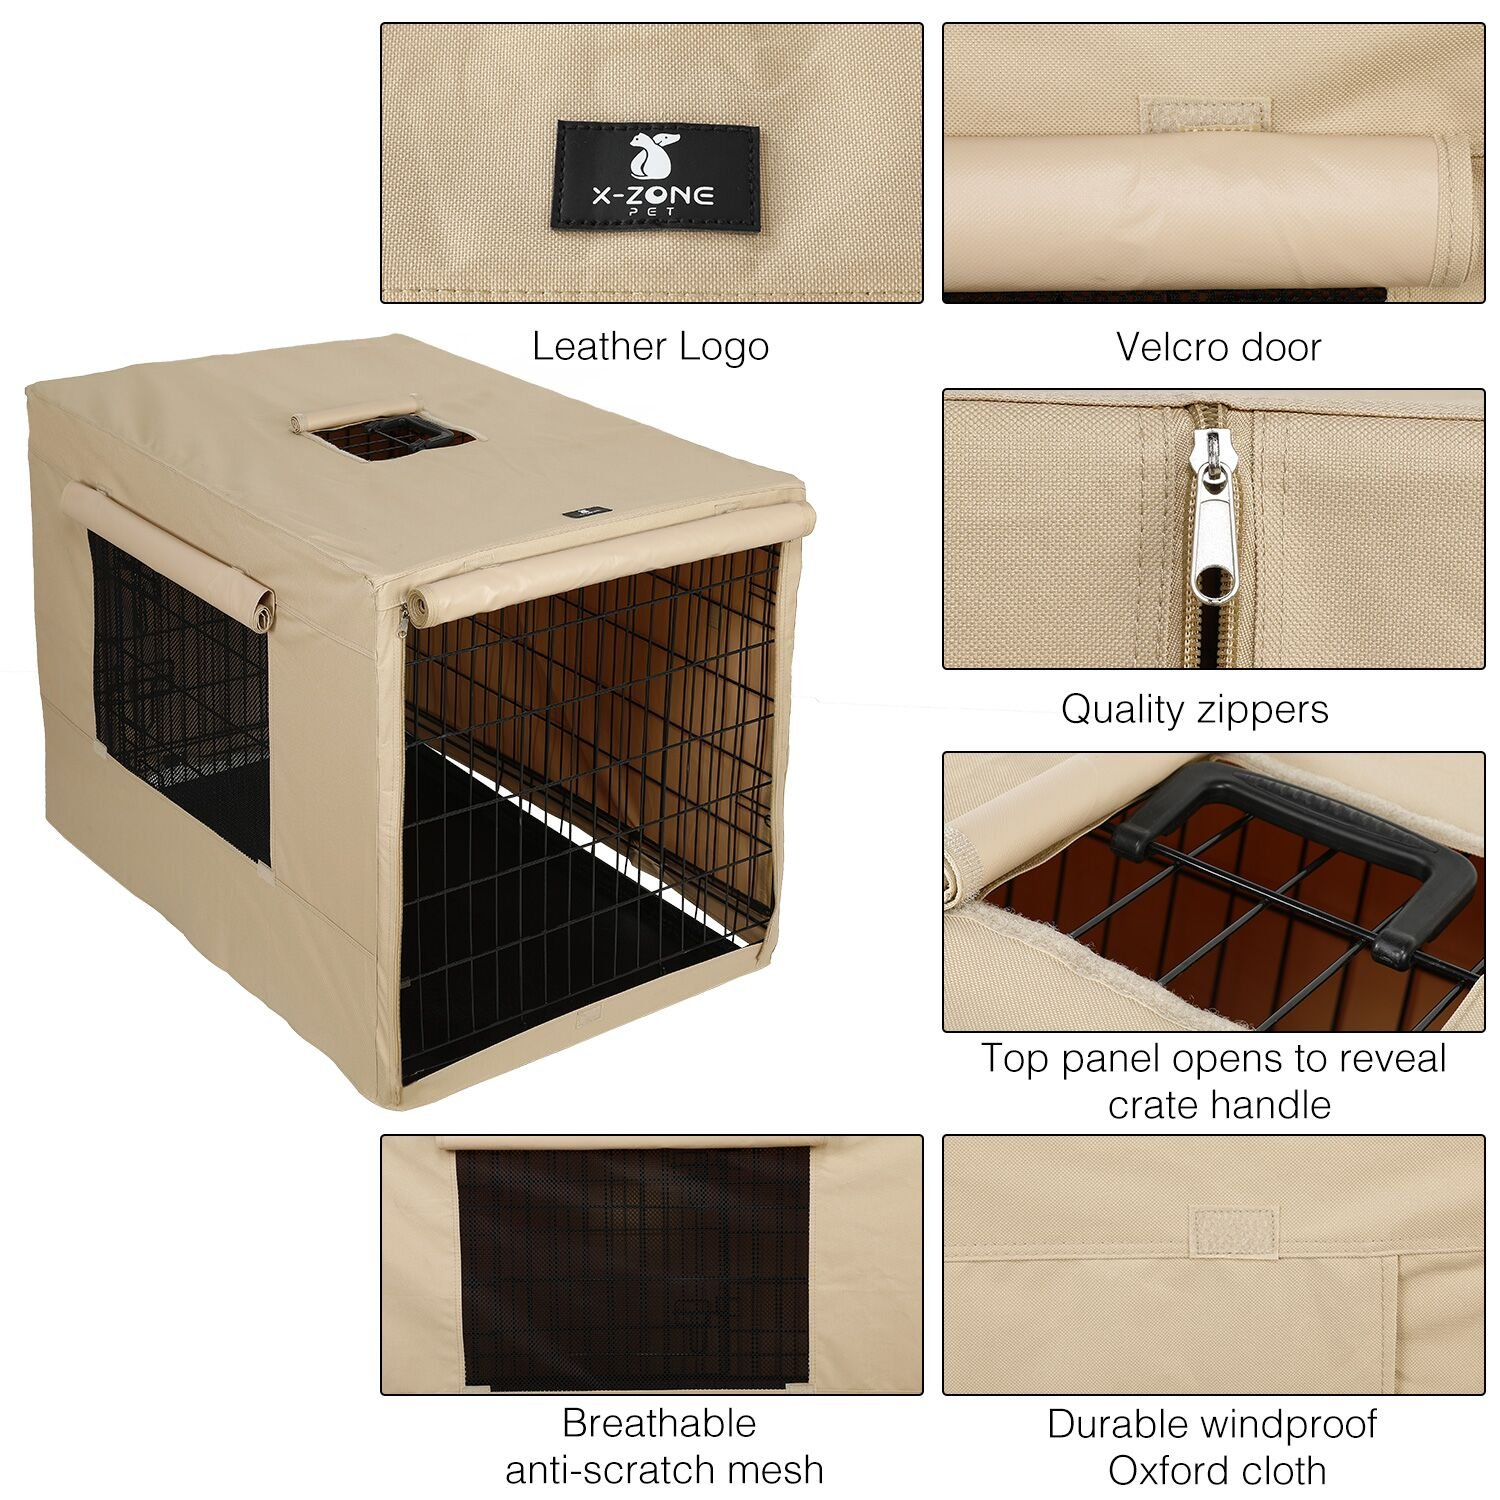 X-ZONE PET Indoor/Outdoor Dog Crate Cover, Polyester Crate Cover or Durable Windproof Kennel Covers for Wire dog Crates (30-Inch) by X-ZONE PET (Image #5)